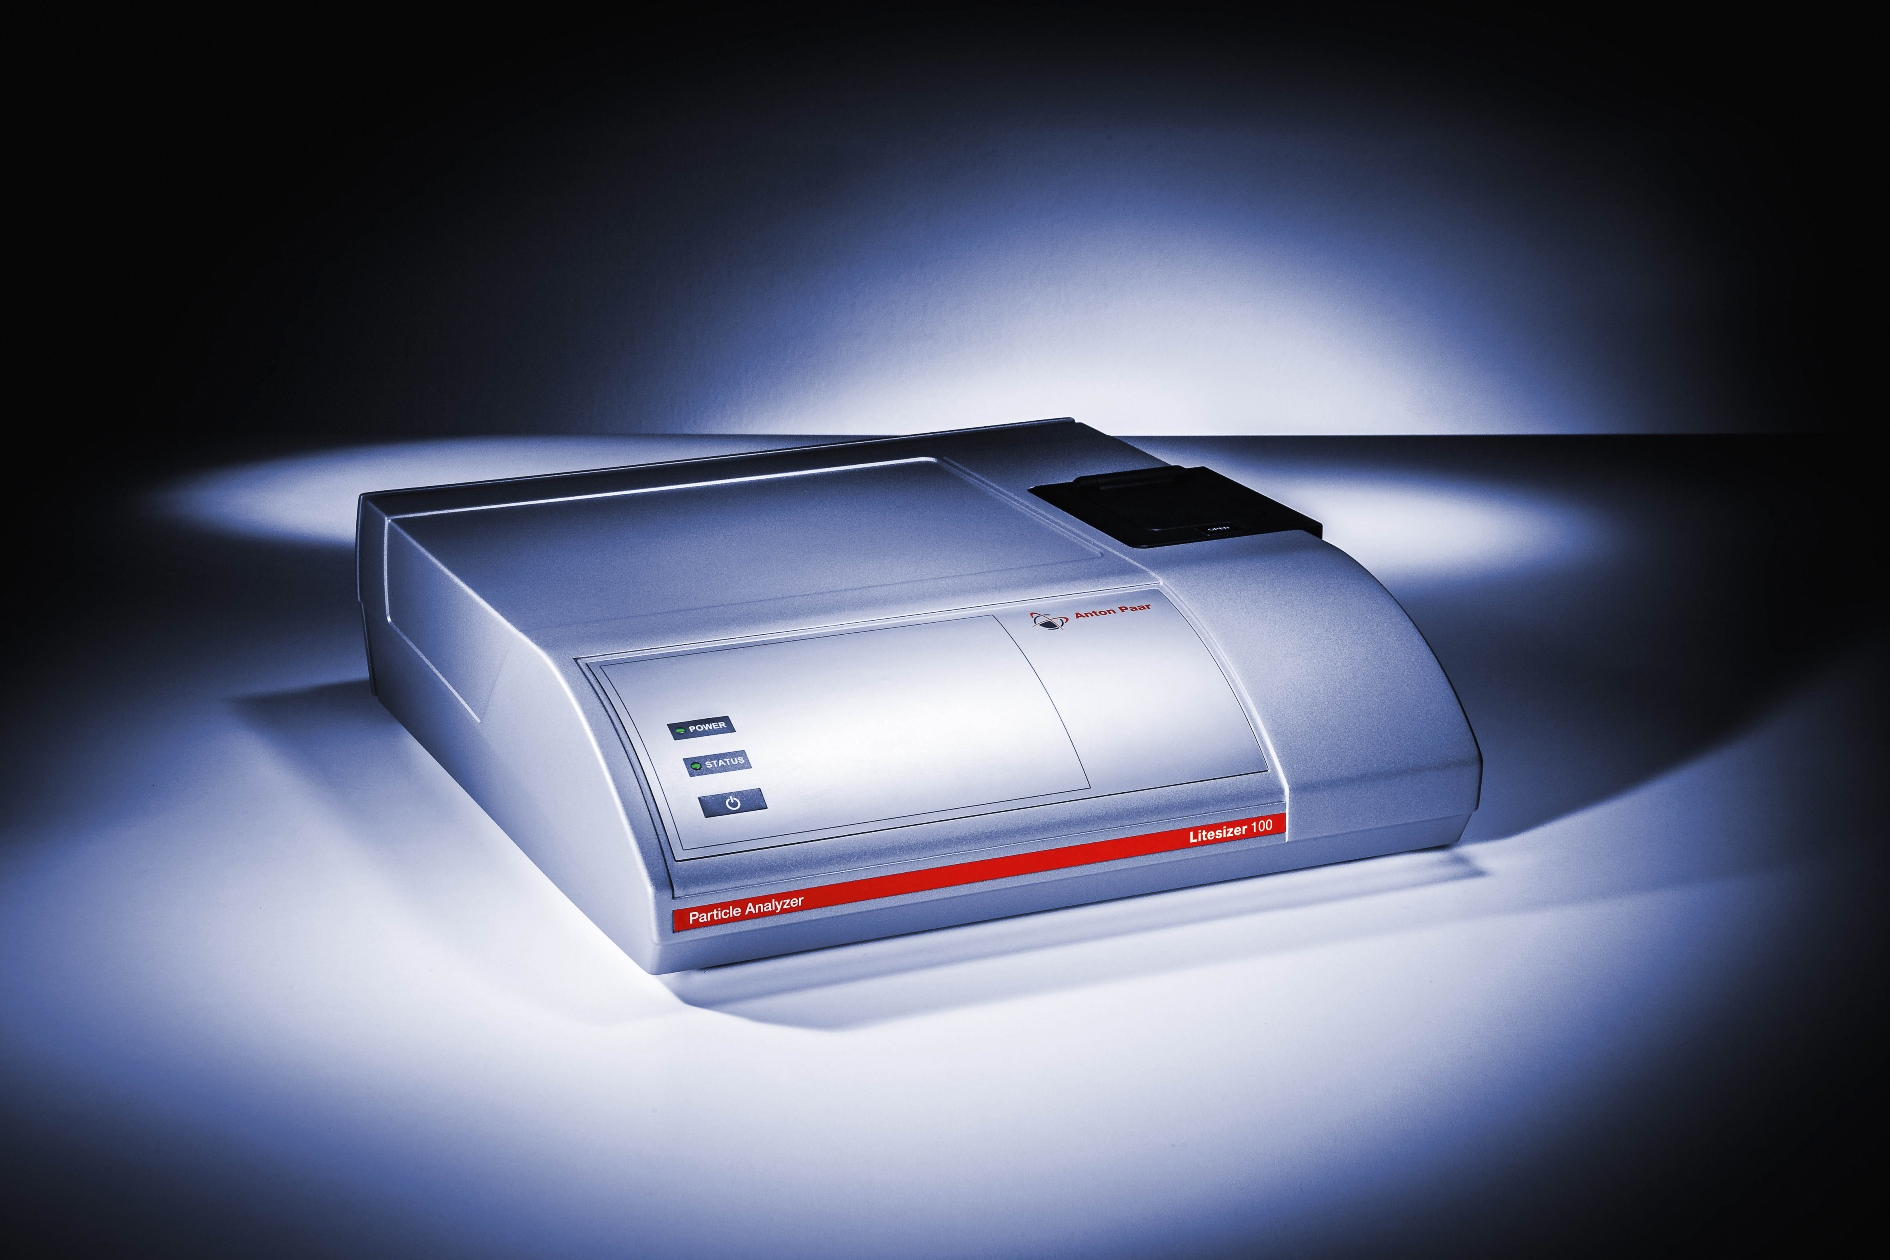 Litesizer 100 particle analyser